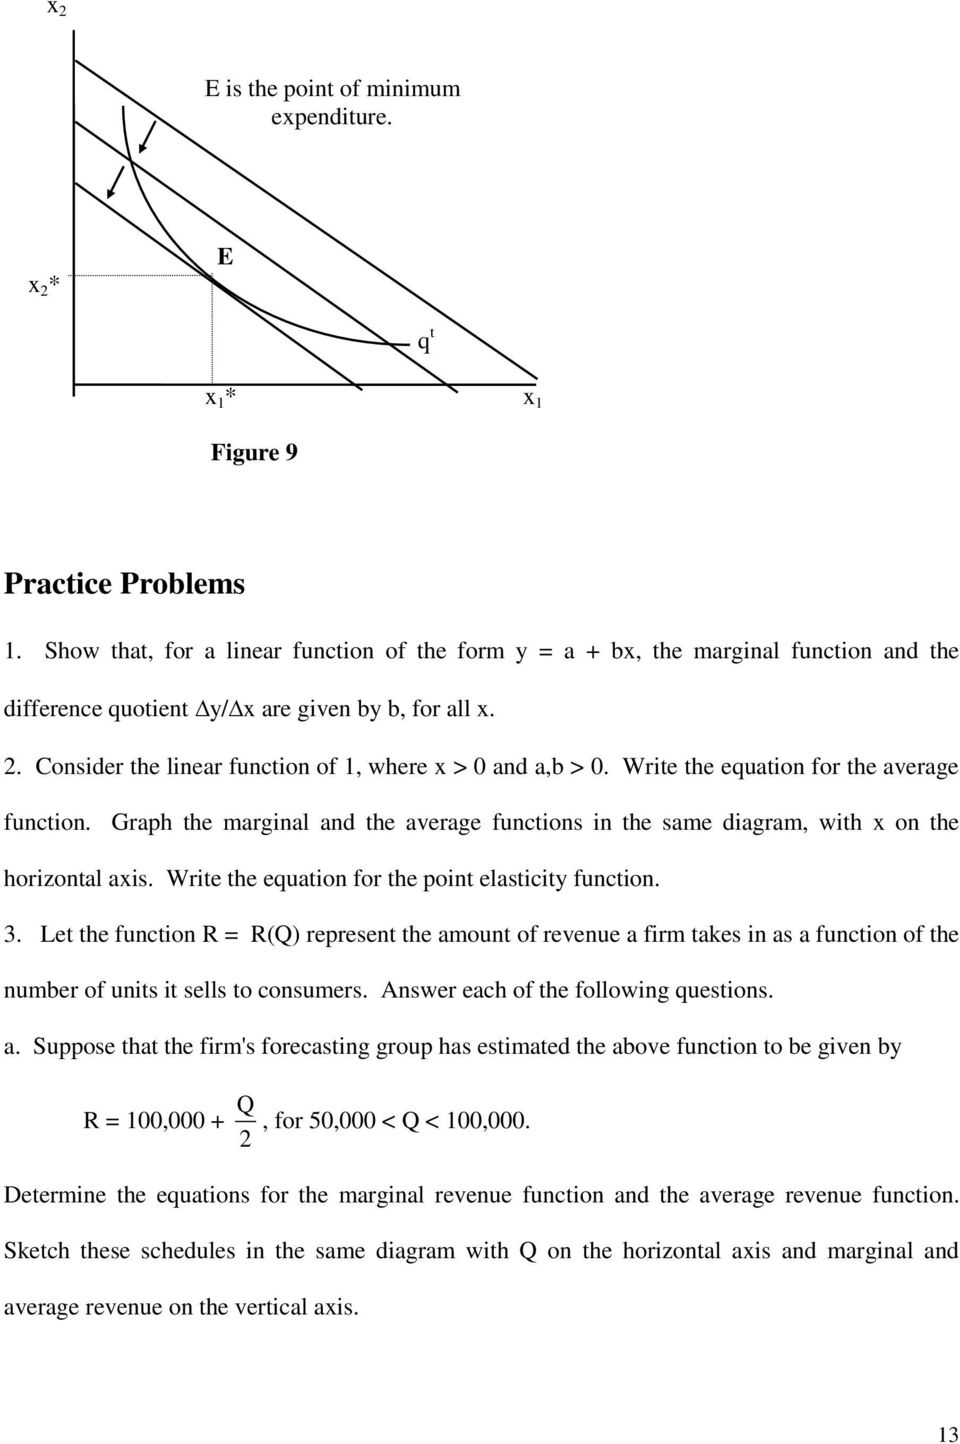 Lecture 2  Marginal Functions, Average Functions, Elasticity